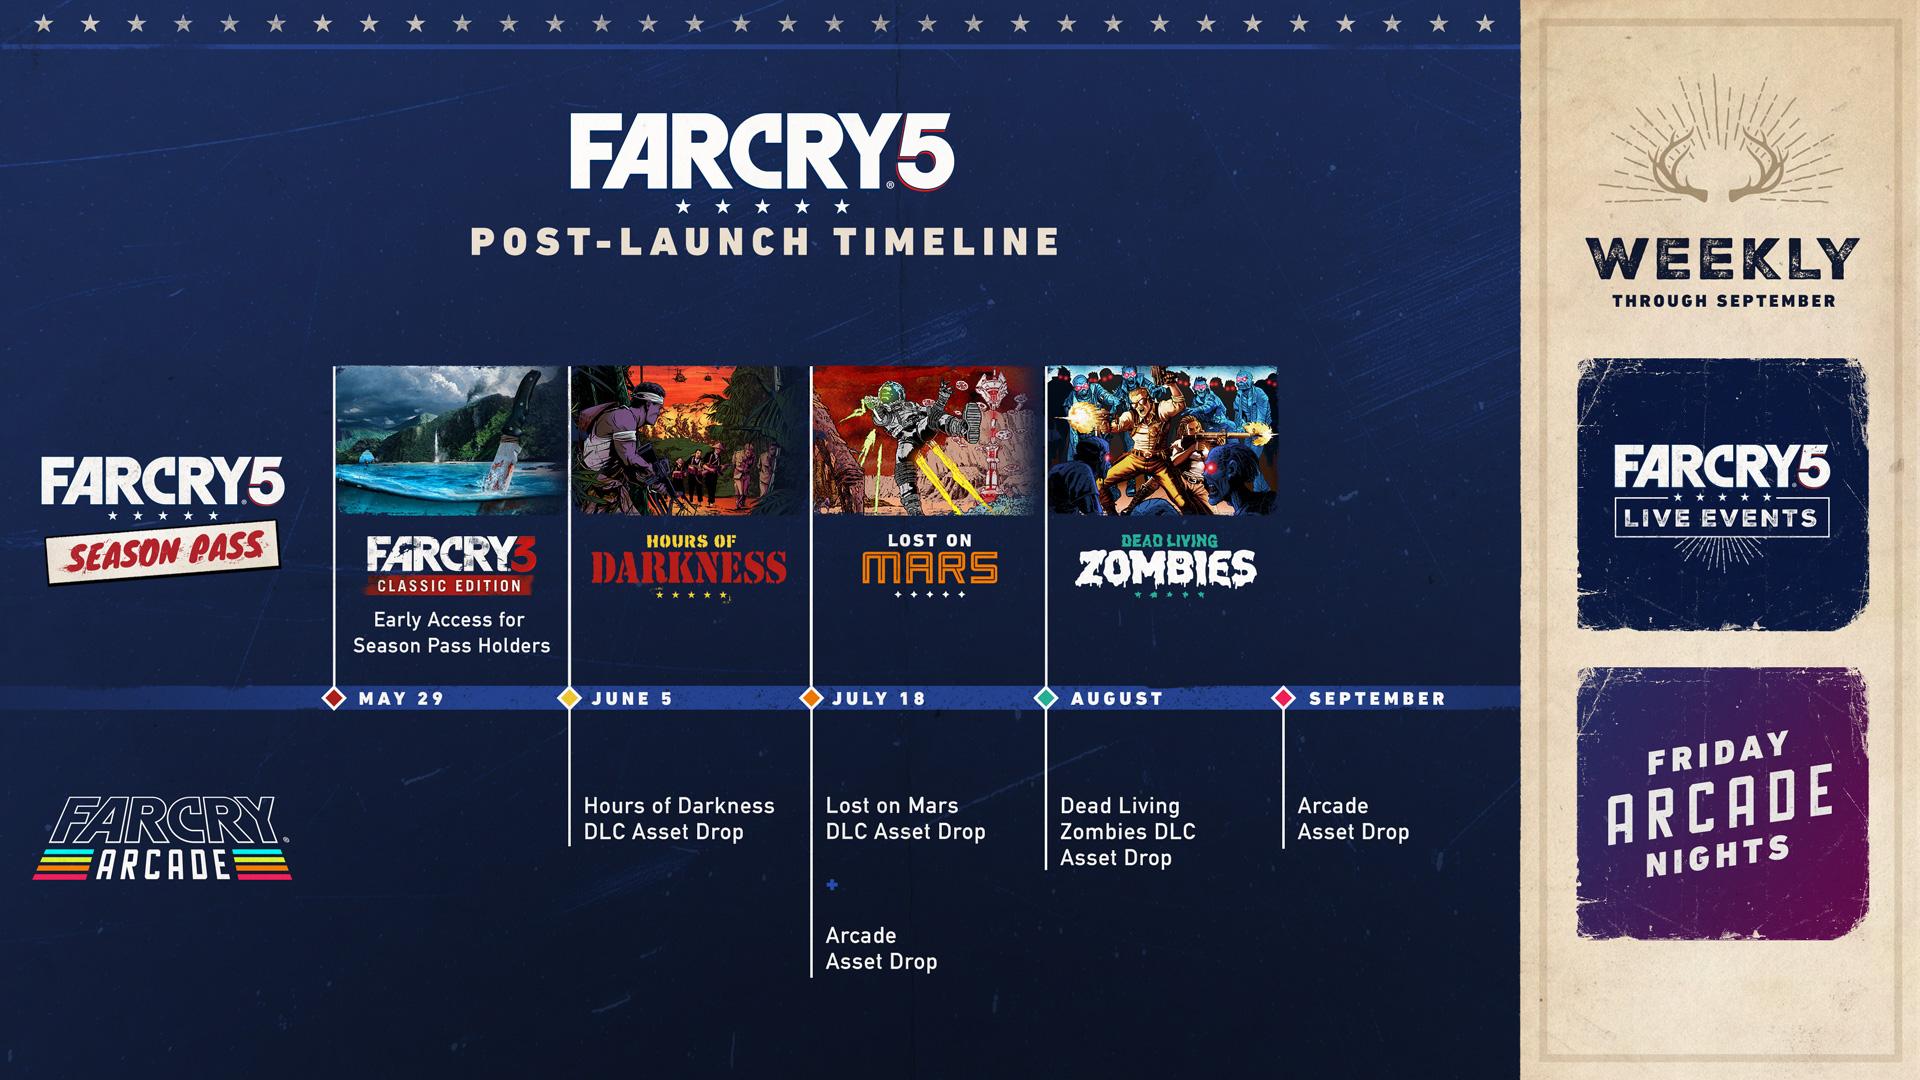 FC5_Season_Pass_infographic_ENG.JPG